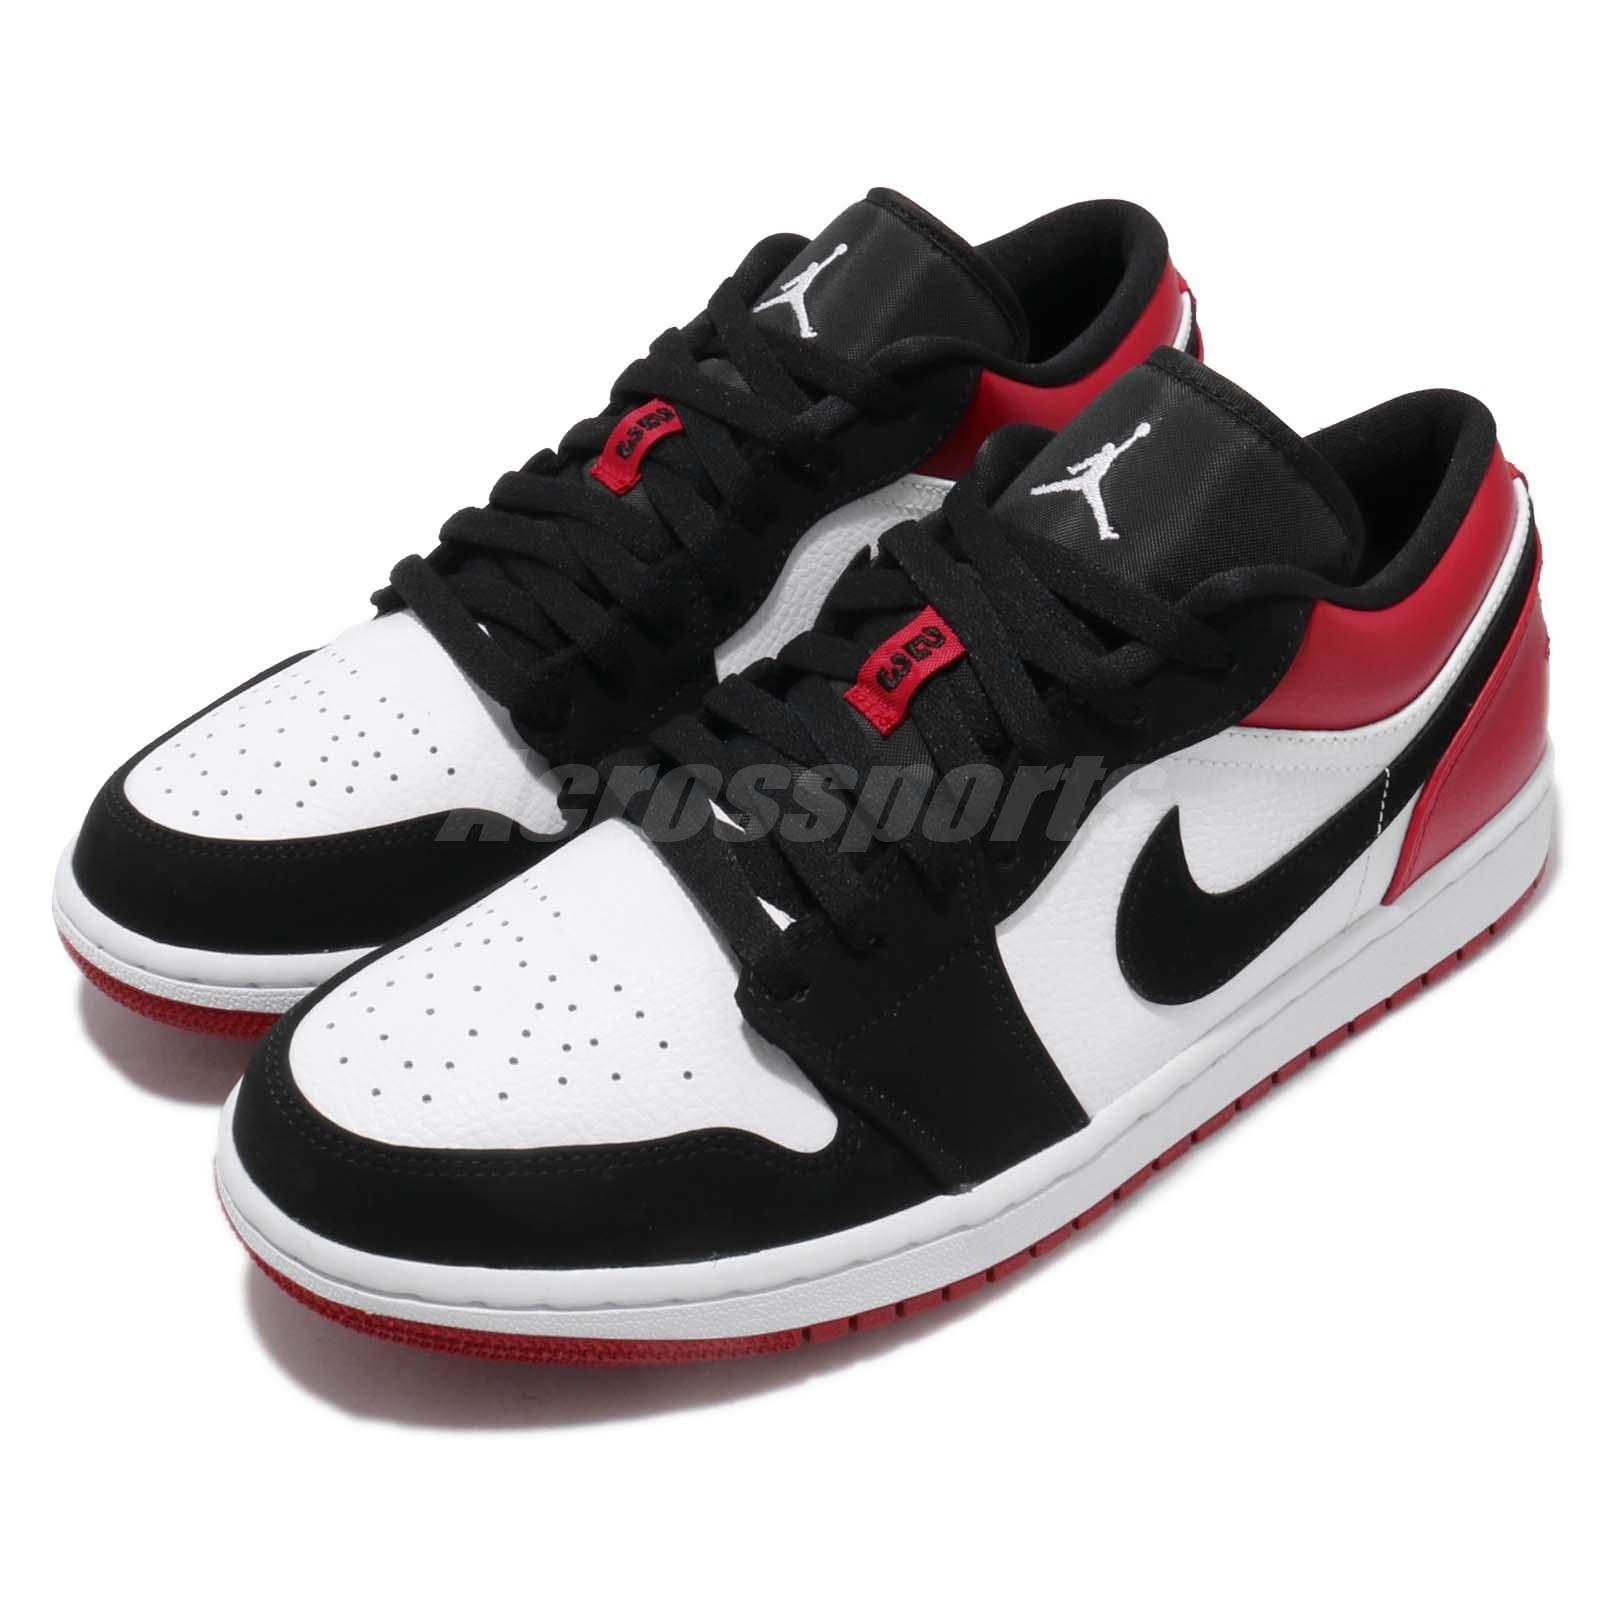 new arrival a33a2 bfca9 Details about Nike Air Jordan 1 Low Black Toe White Black Gym Red AJ1  Sneakers Shoe 553558-116